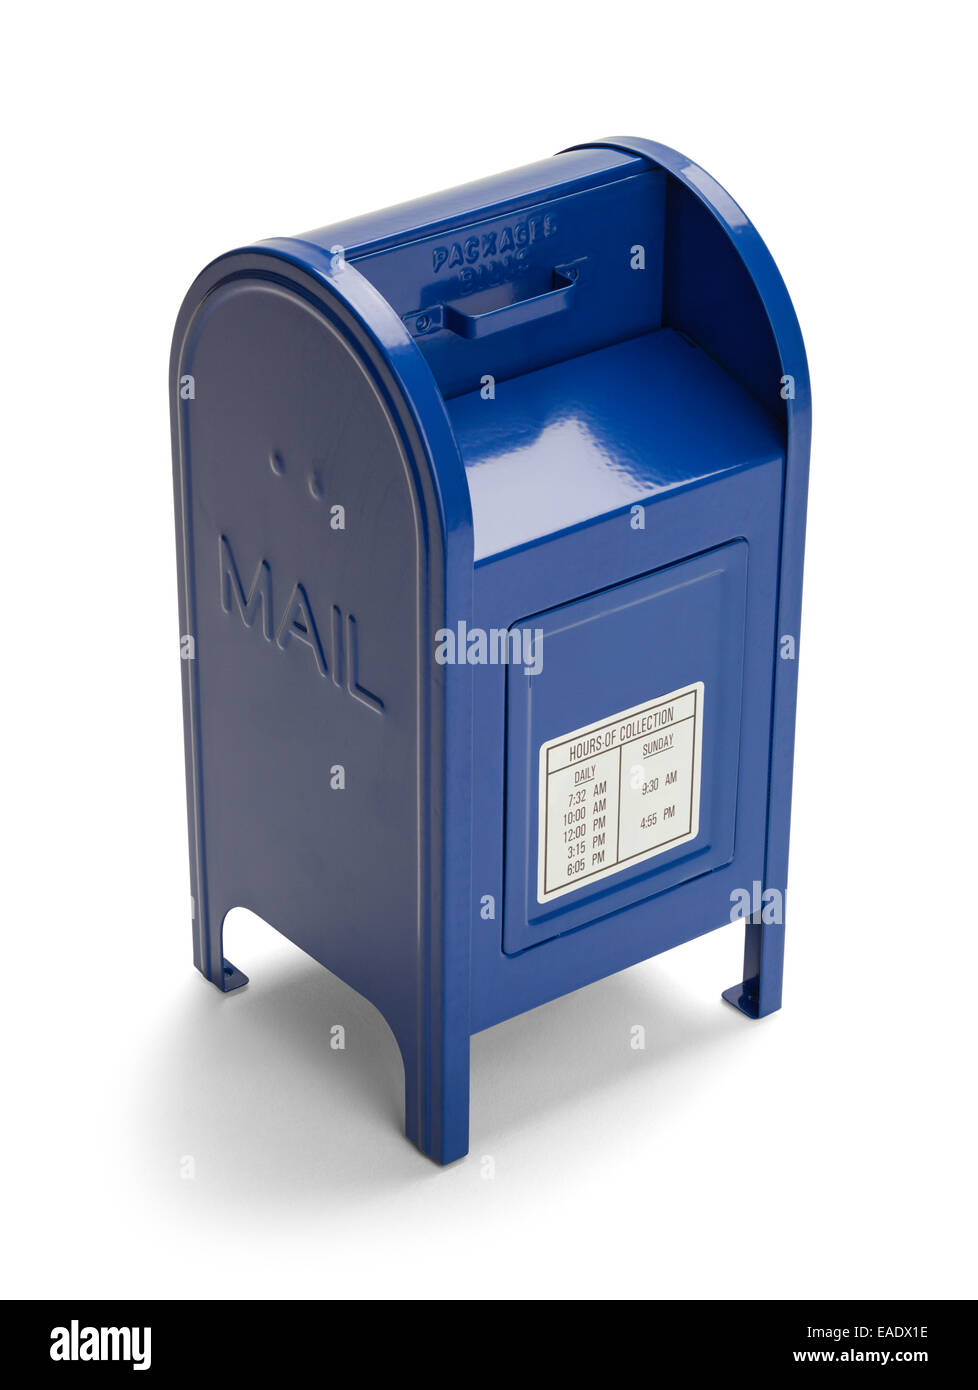 Metal Blue Postal Mail Box Isolated on White Background. - Stock Image